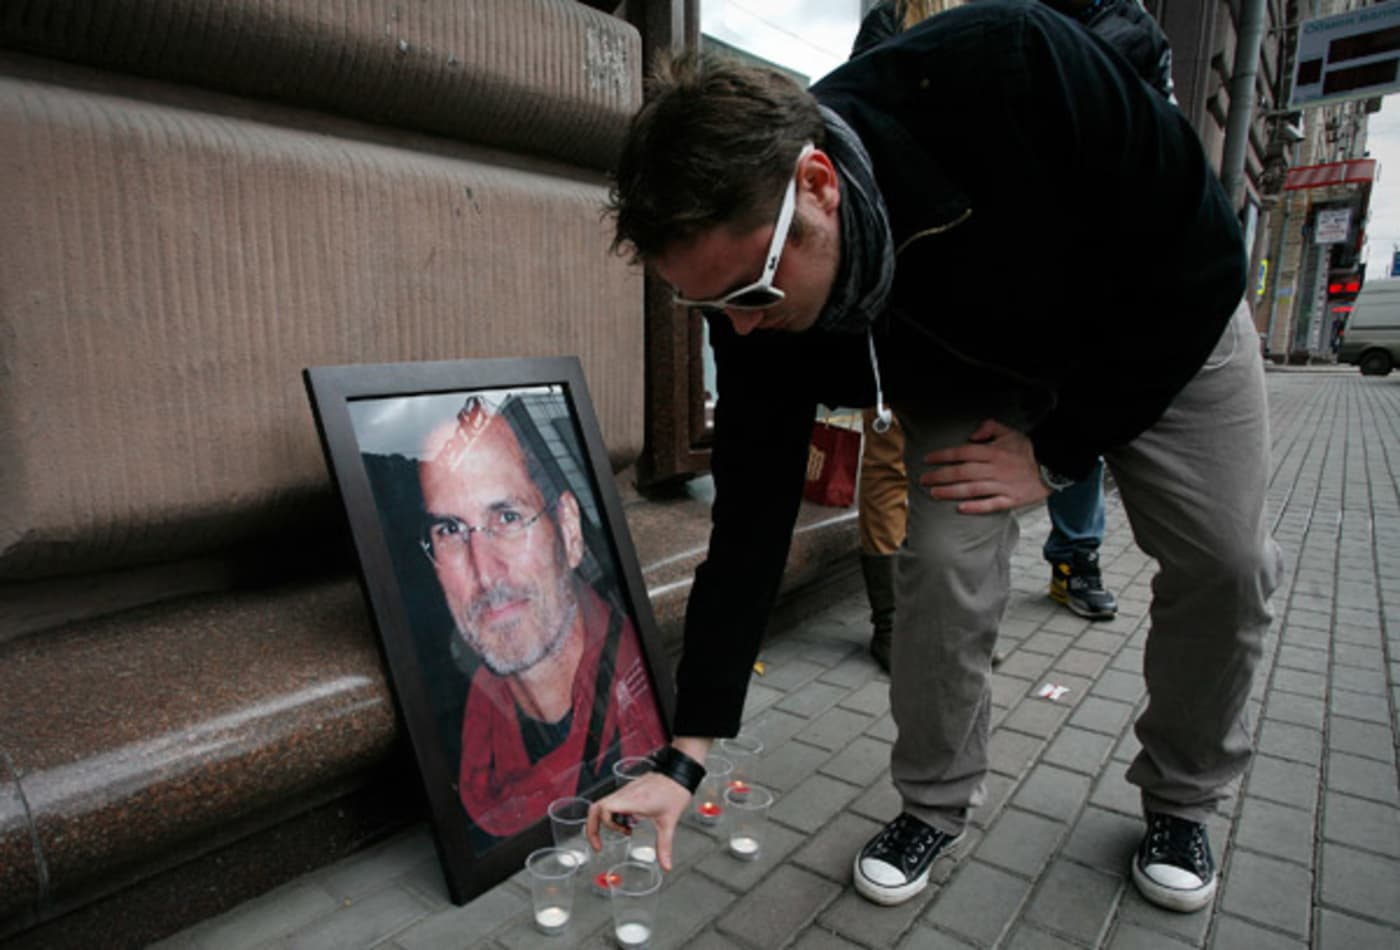 steve-jobs-passed-away-remembering-cnbc-13.jpg